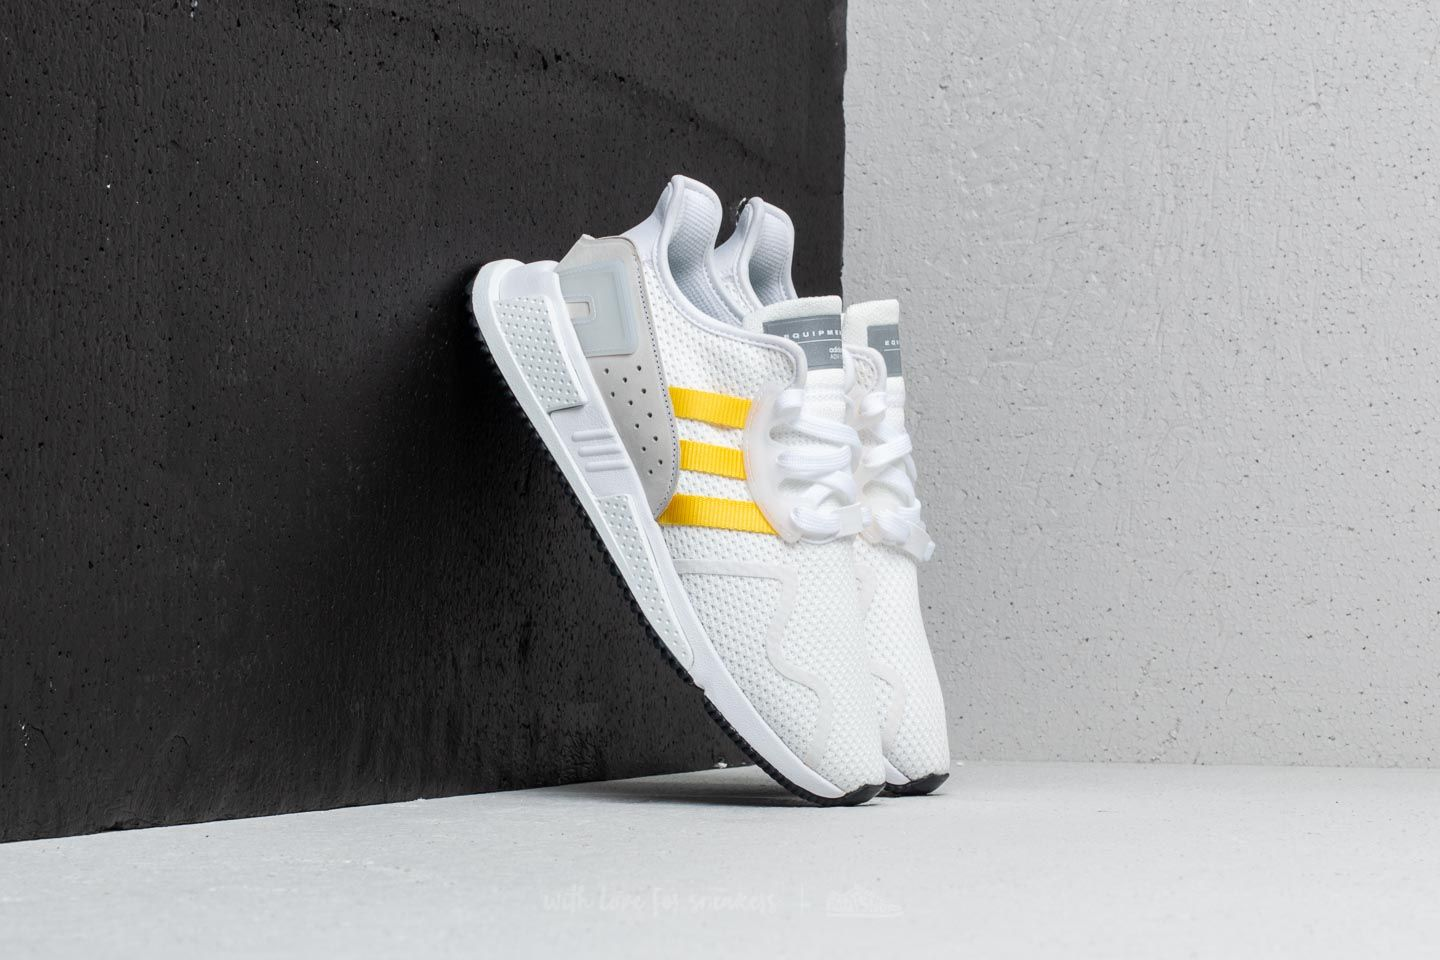 sale retailer ae44c 40df2 adidas EQT Cushion ADV Ftw White  Eqt Yellow  Silver Metallic at a great  price